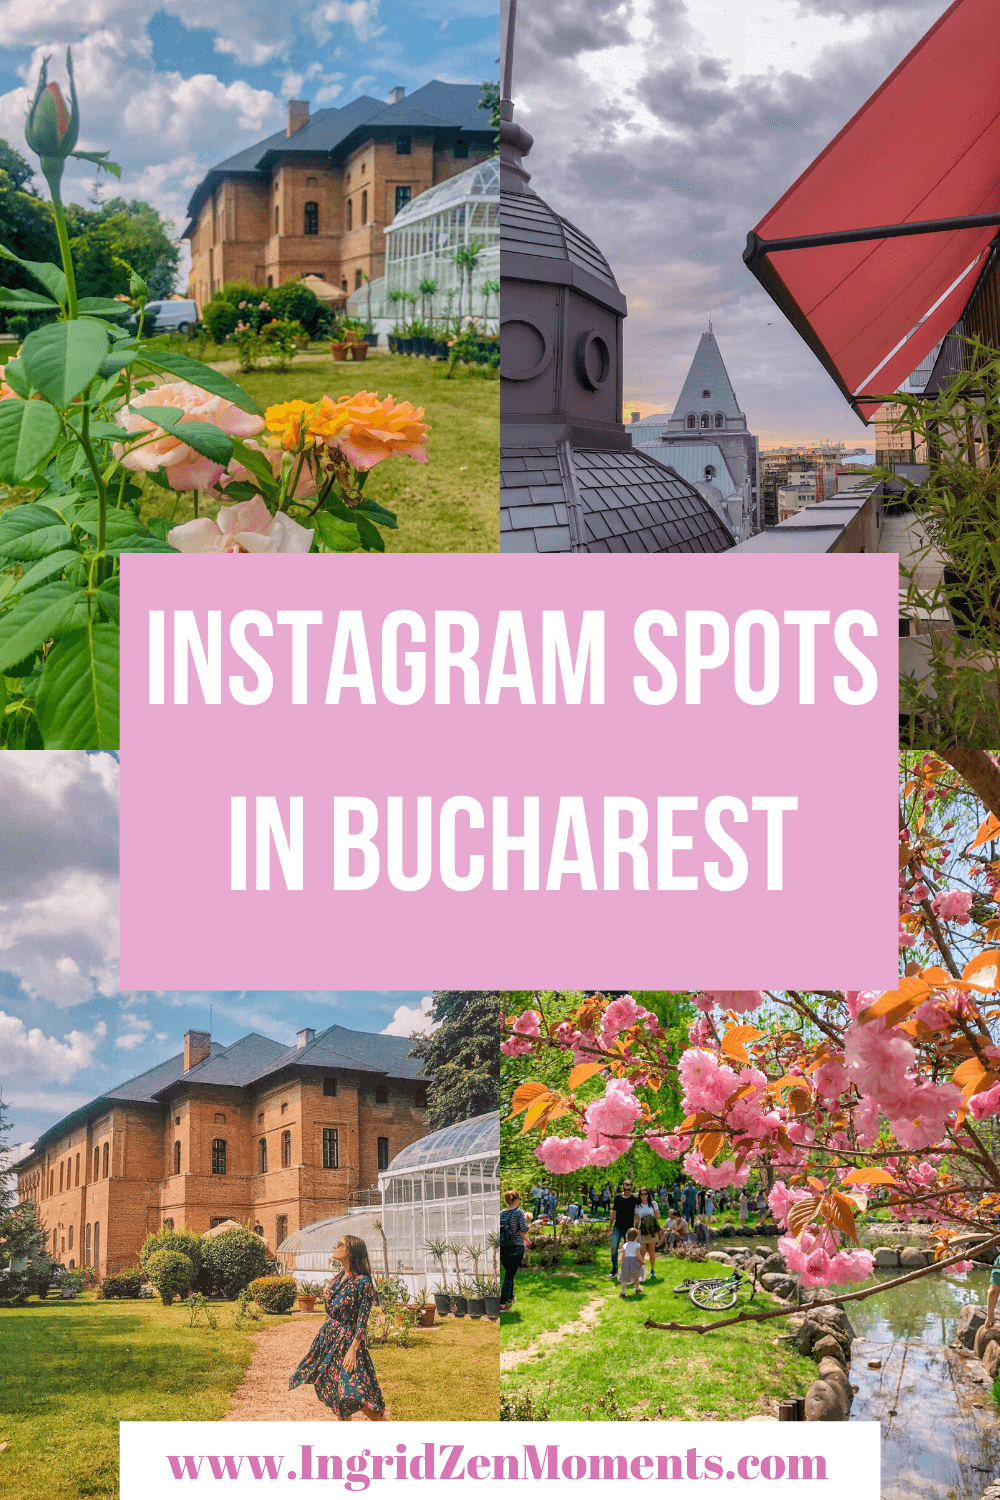 The most instagrammable places in Bucharest / Visit Bucharest / Bucharest travel guide / Bucharest attractions | Bucharest things to do | From Palace of the People to the Umbrella Alley to the Old Town of Bucharest, these are all the best photography locations in Bucharest | Bucharest Romania | Bucharest photos | Bucharest photography | Bucharest pictures | Eastern Europe travel | #romania #bucharest #travel #easterneurope